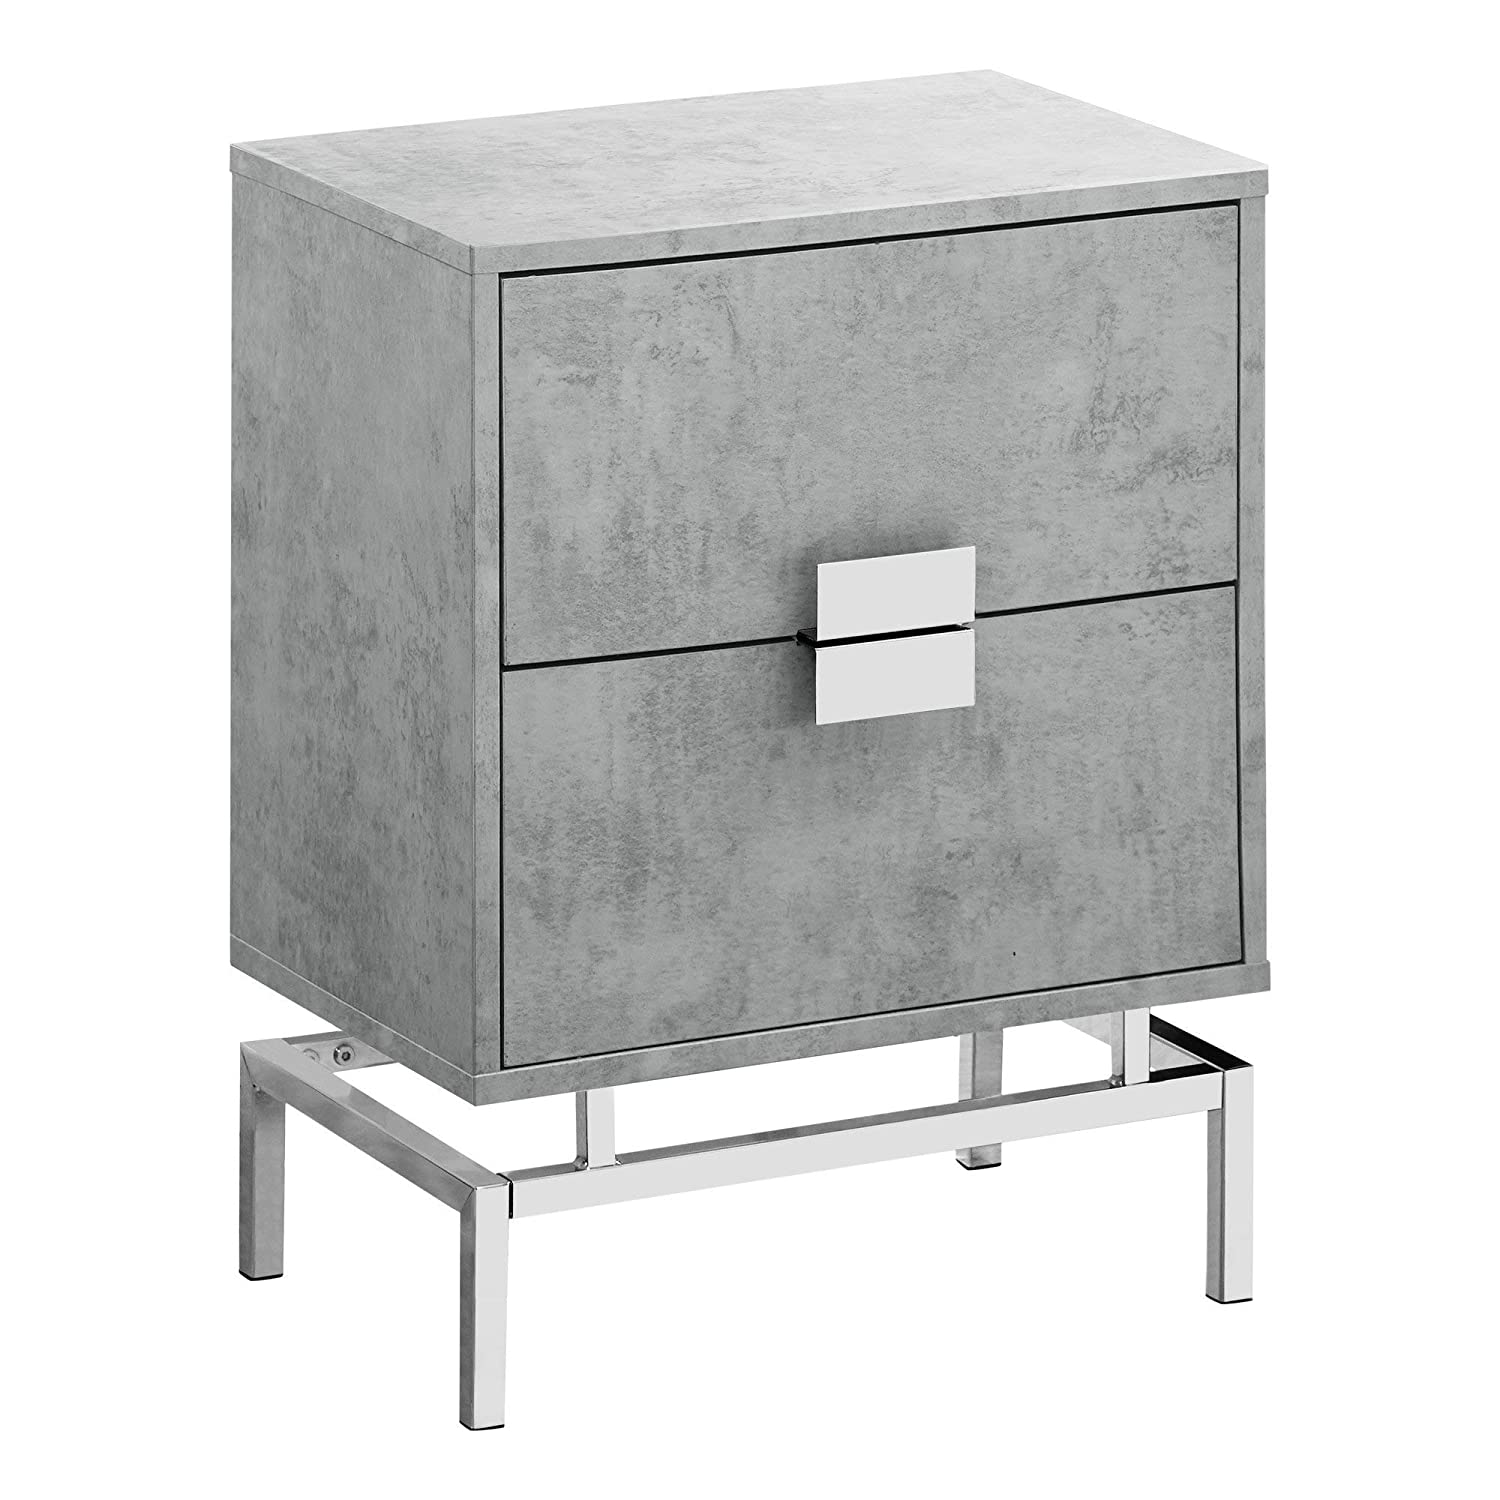 """Monarch Specialties I I 3491 Accent, End, Night Stand, Side Table, 2 Drawers, 24"""" H, Grey Cement/Chrome by Monarch Specialties"""